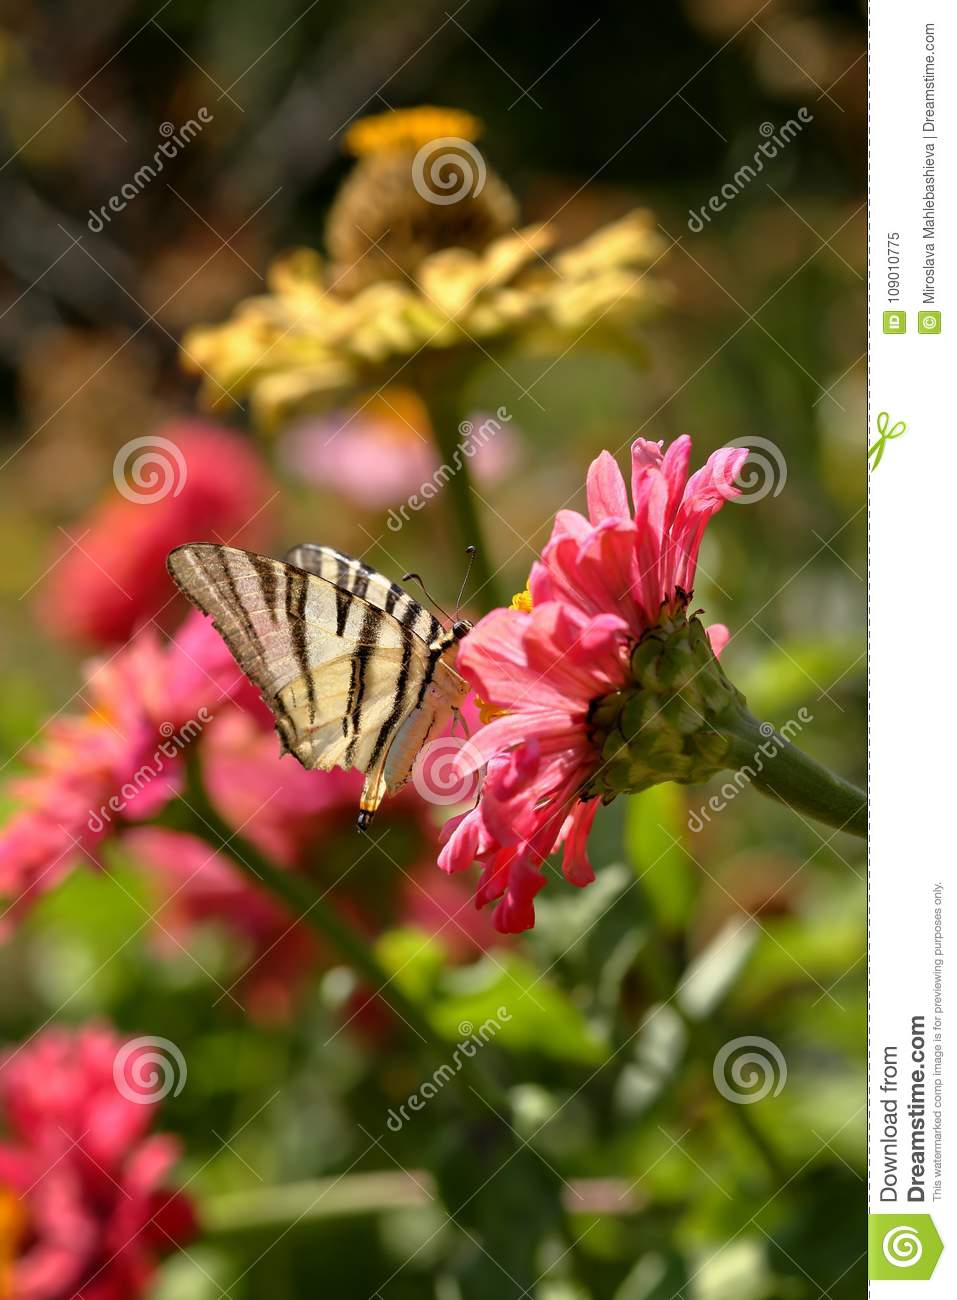 Macro of a Scarce Swallowtail Iphiclides Podalirius butterfly getting nectar on a pink Zinnia Elegans flower against blurred vib